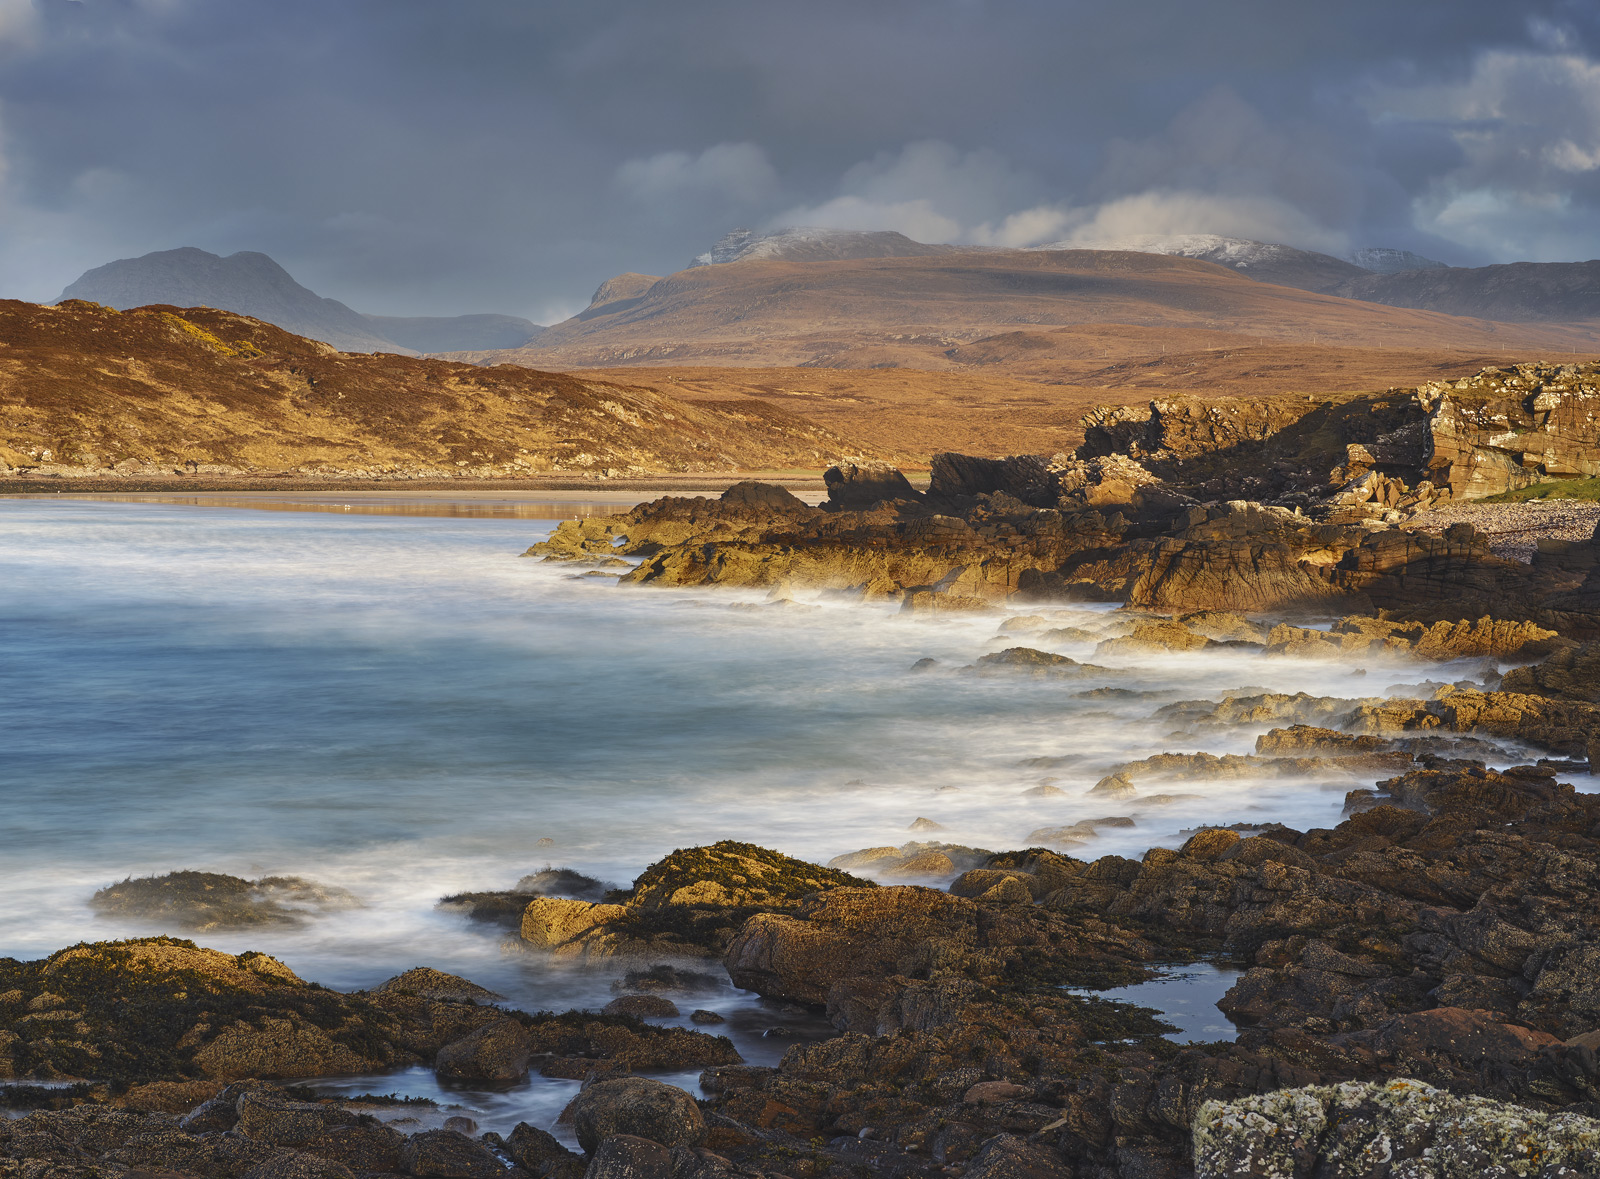 Rolling waves clatter the Achnahaird coast at sunset turning the hills to gold beneath a dark and squally sky.